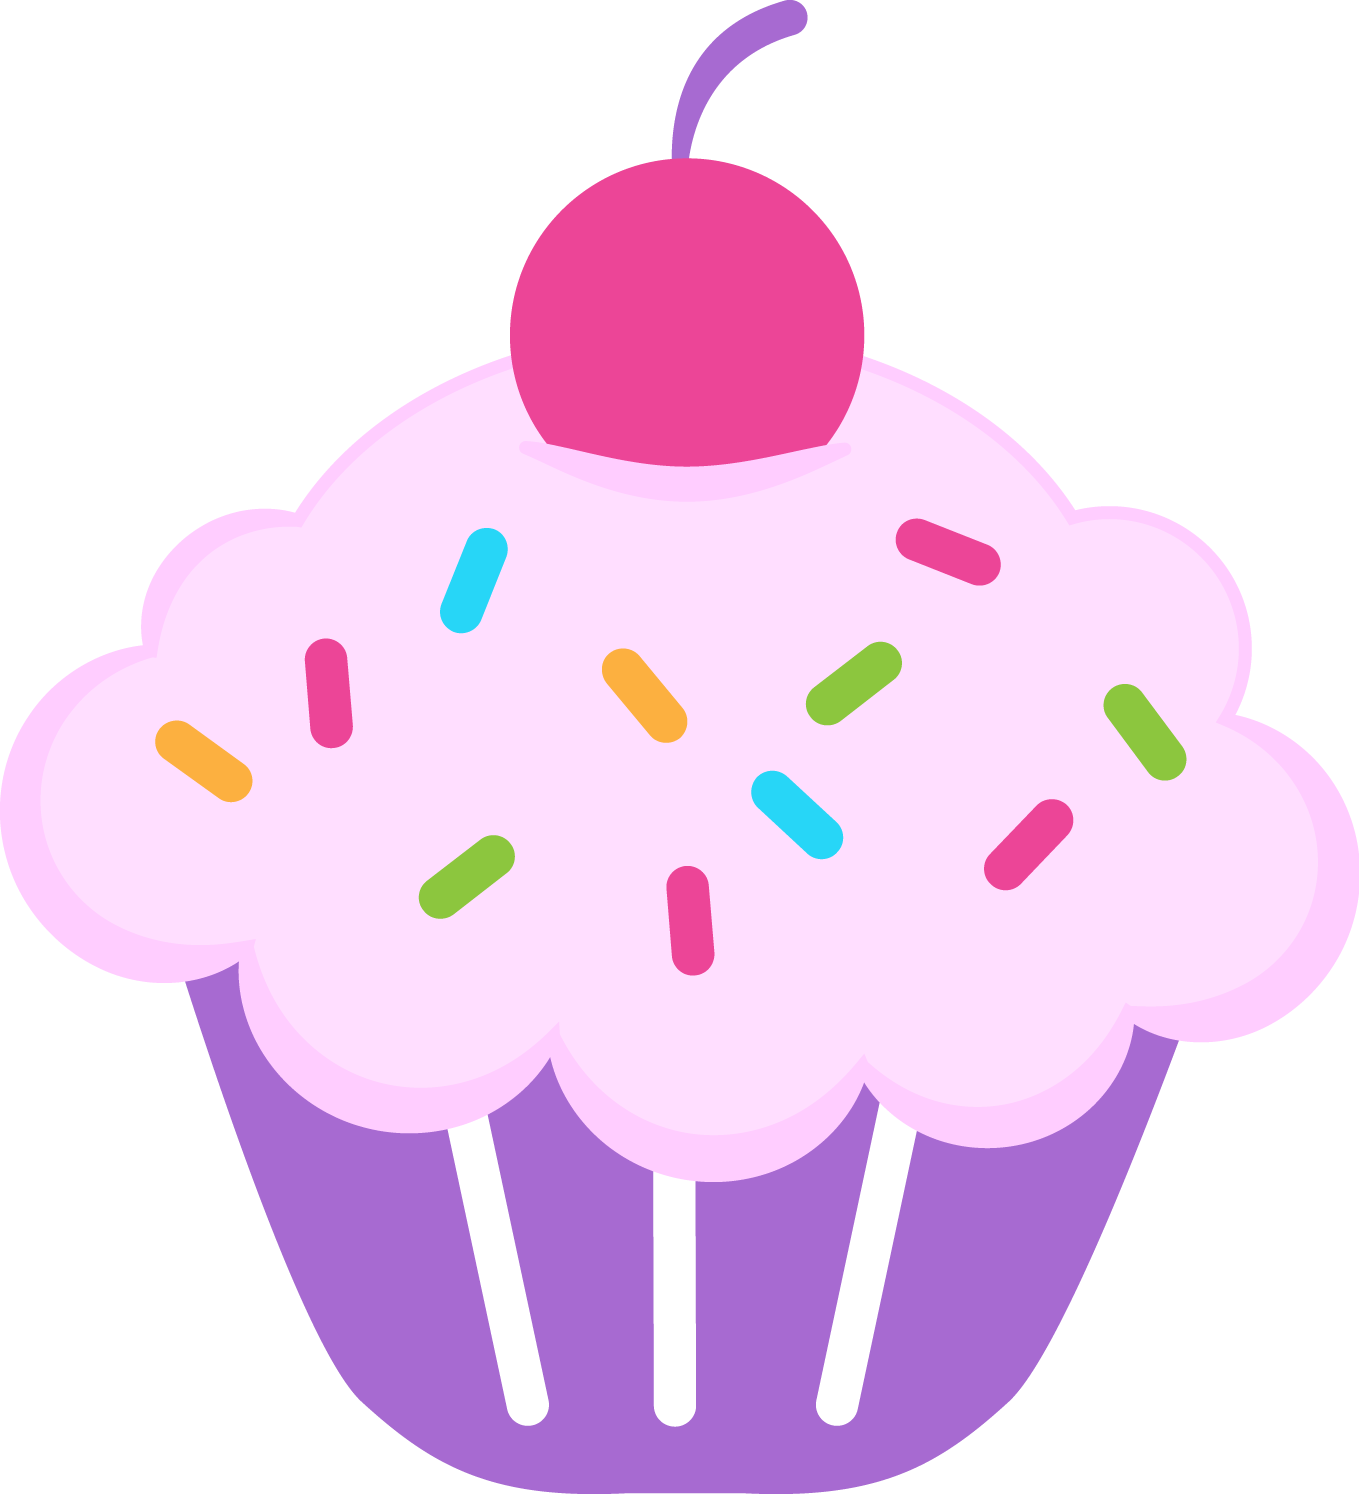 Clipart cupcake september. Cute birthday lacalabaza creative